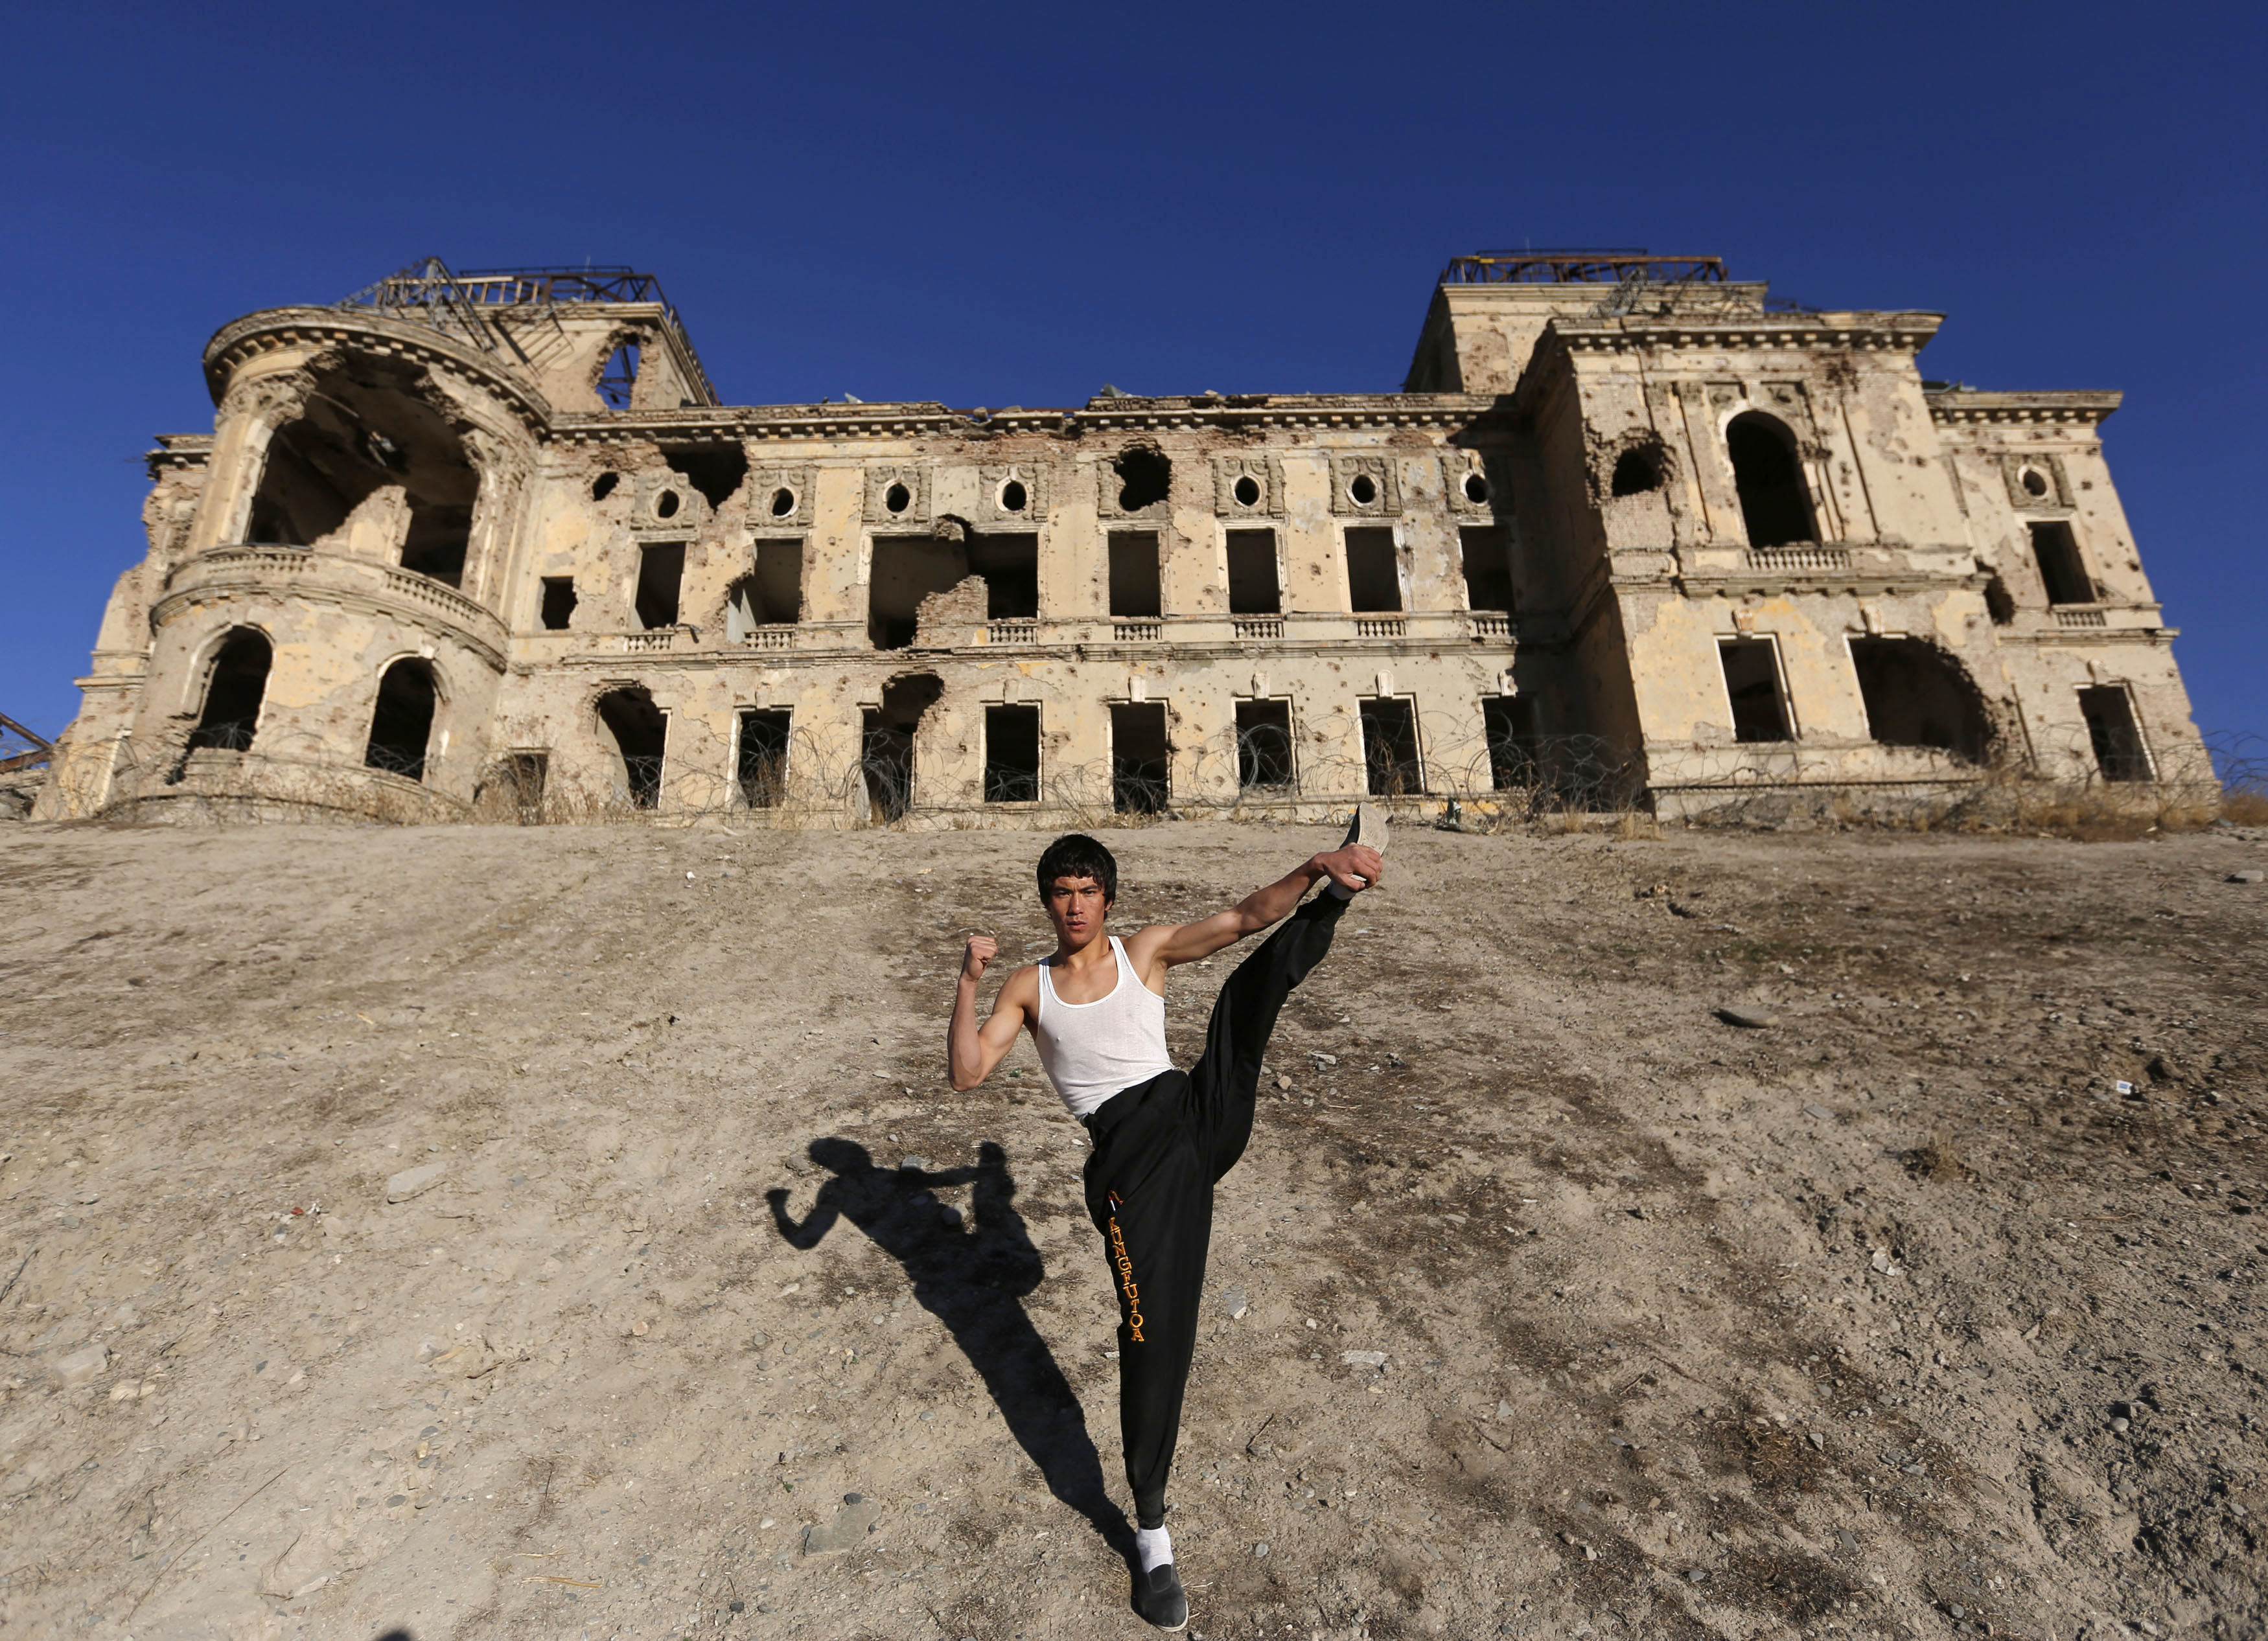 Abbas Alizada who calls himself the Afghan Bruce Lee poses for the media in front of the destroyed Darul Aman Palace in Kabulon Dec. 9, 2014.